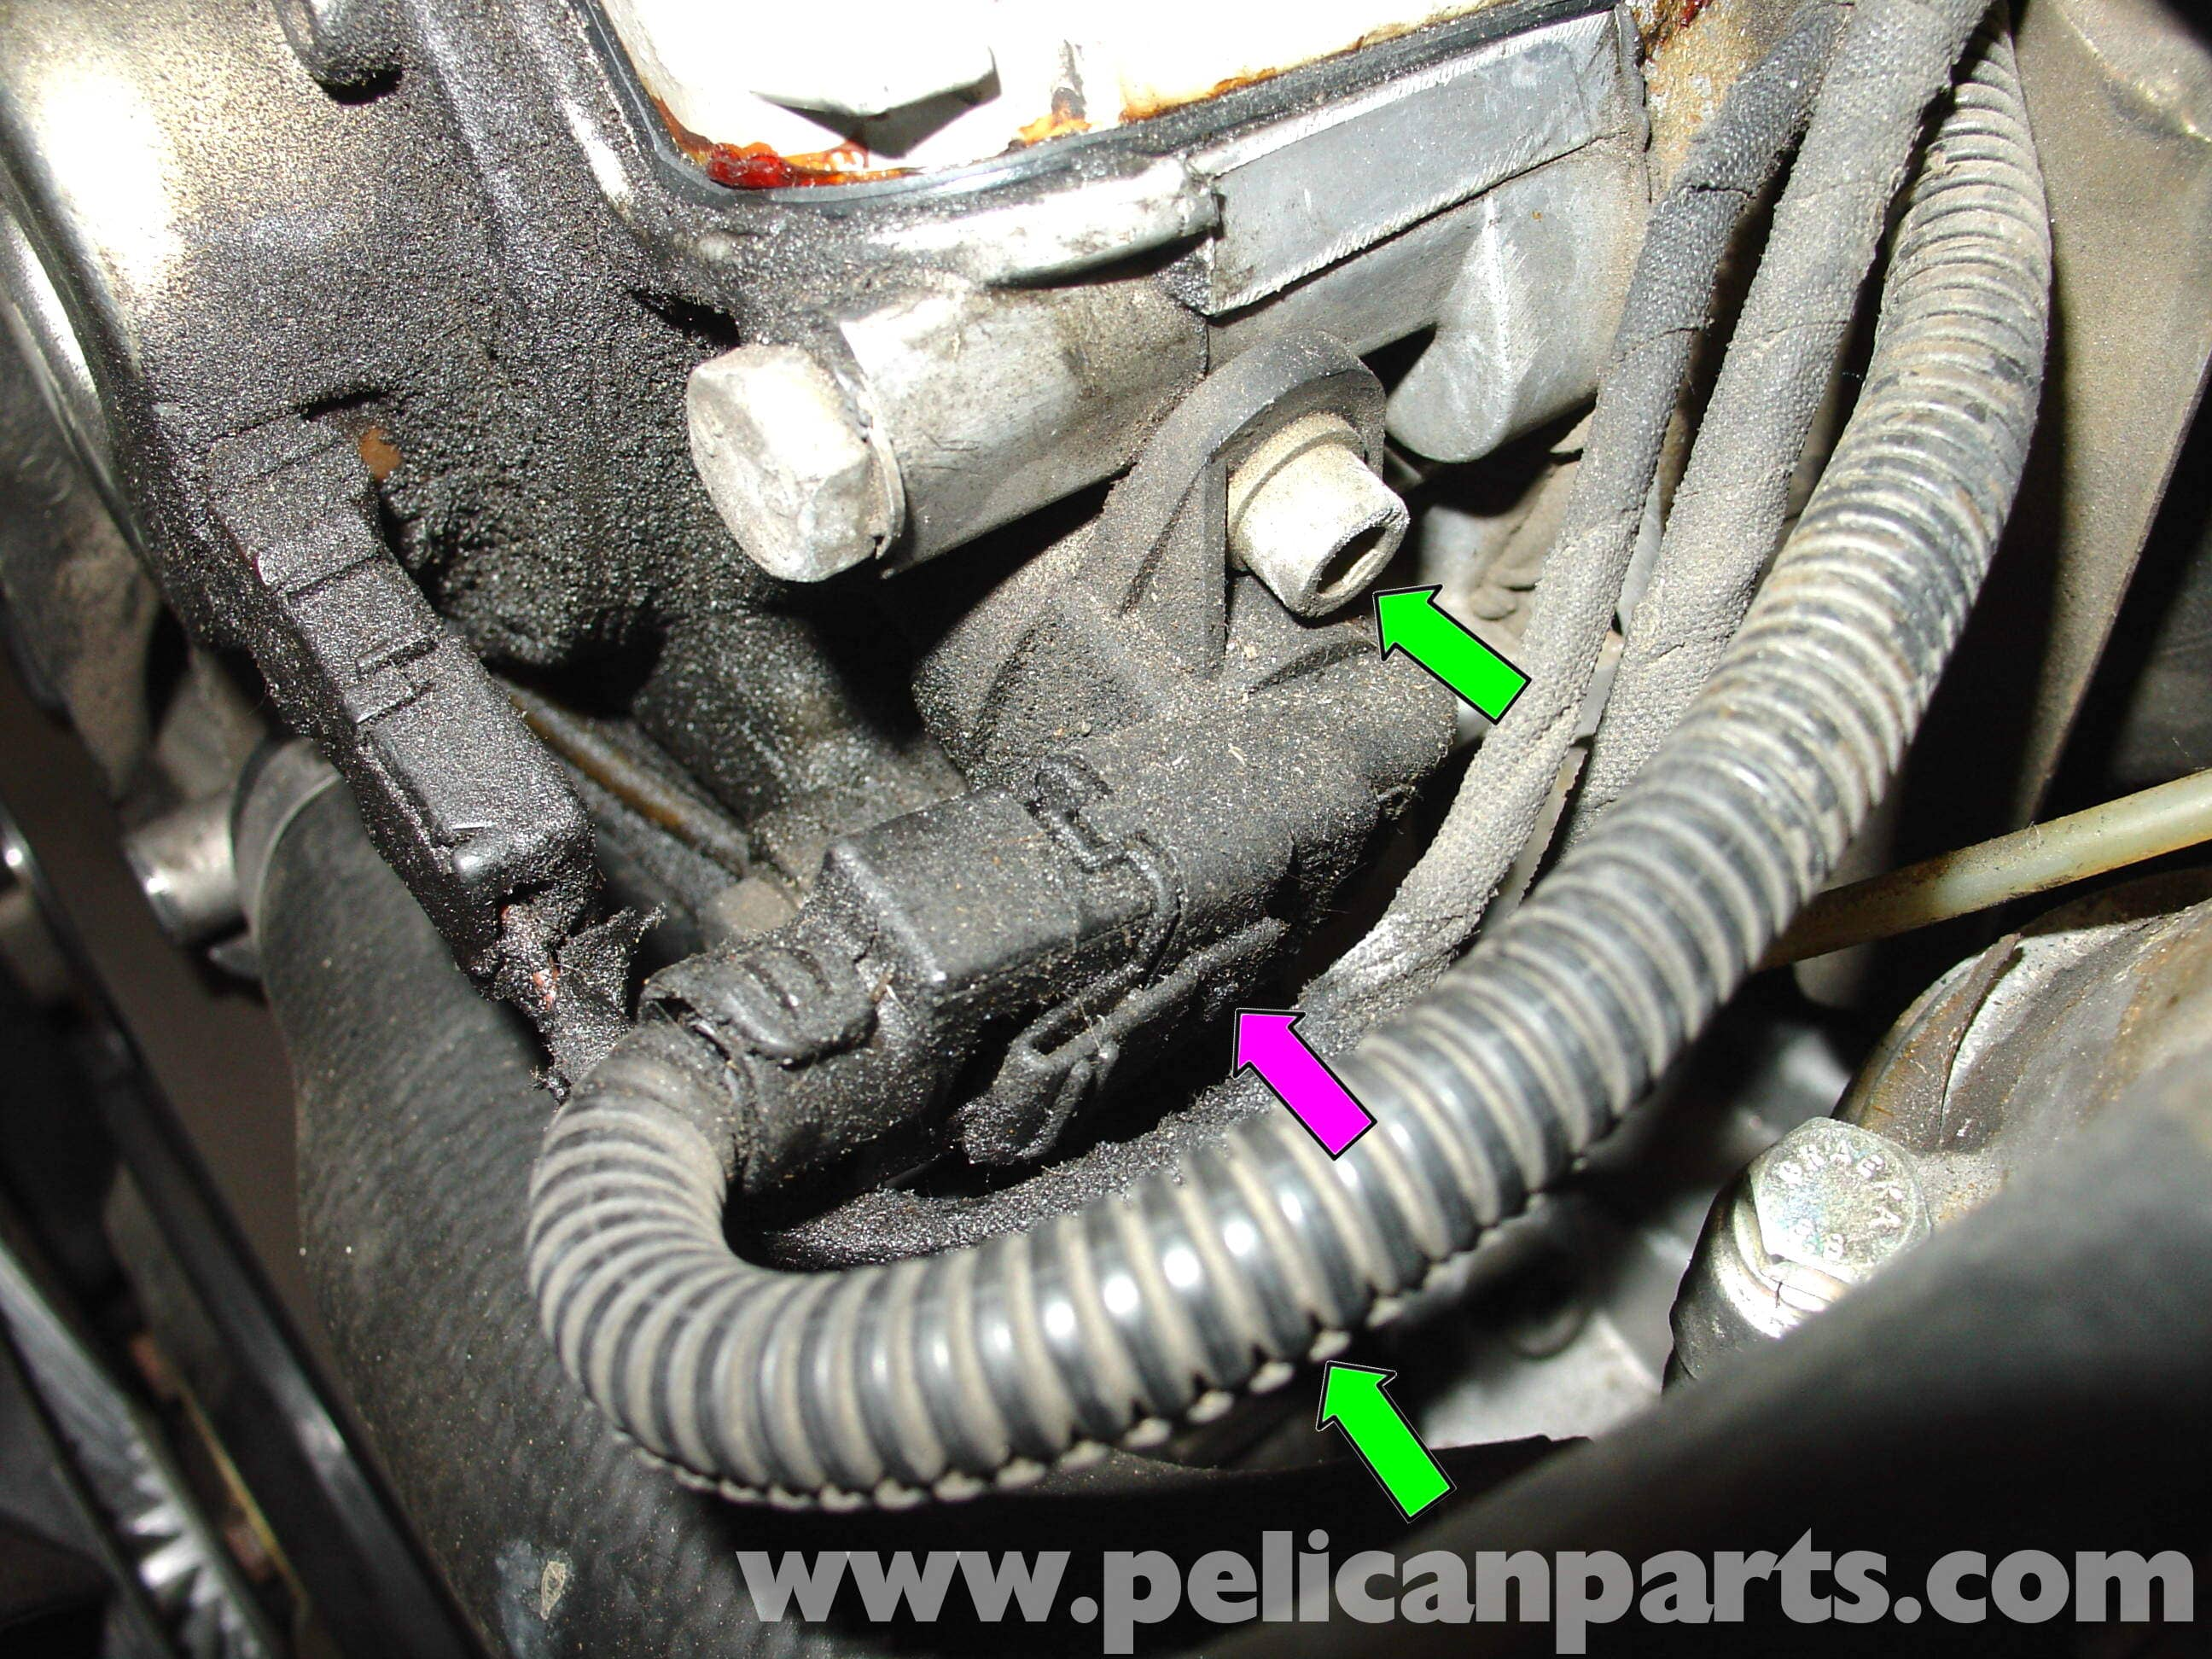 Mercedes Cam Wiring Diagram 27 Images Radio Further Pic02 Benz W210 Camshaft Position Sensor Replacement 1996 03 Sprinter Backup Camera